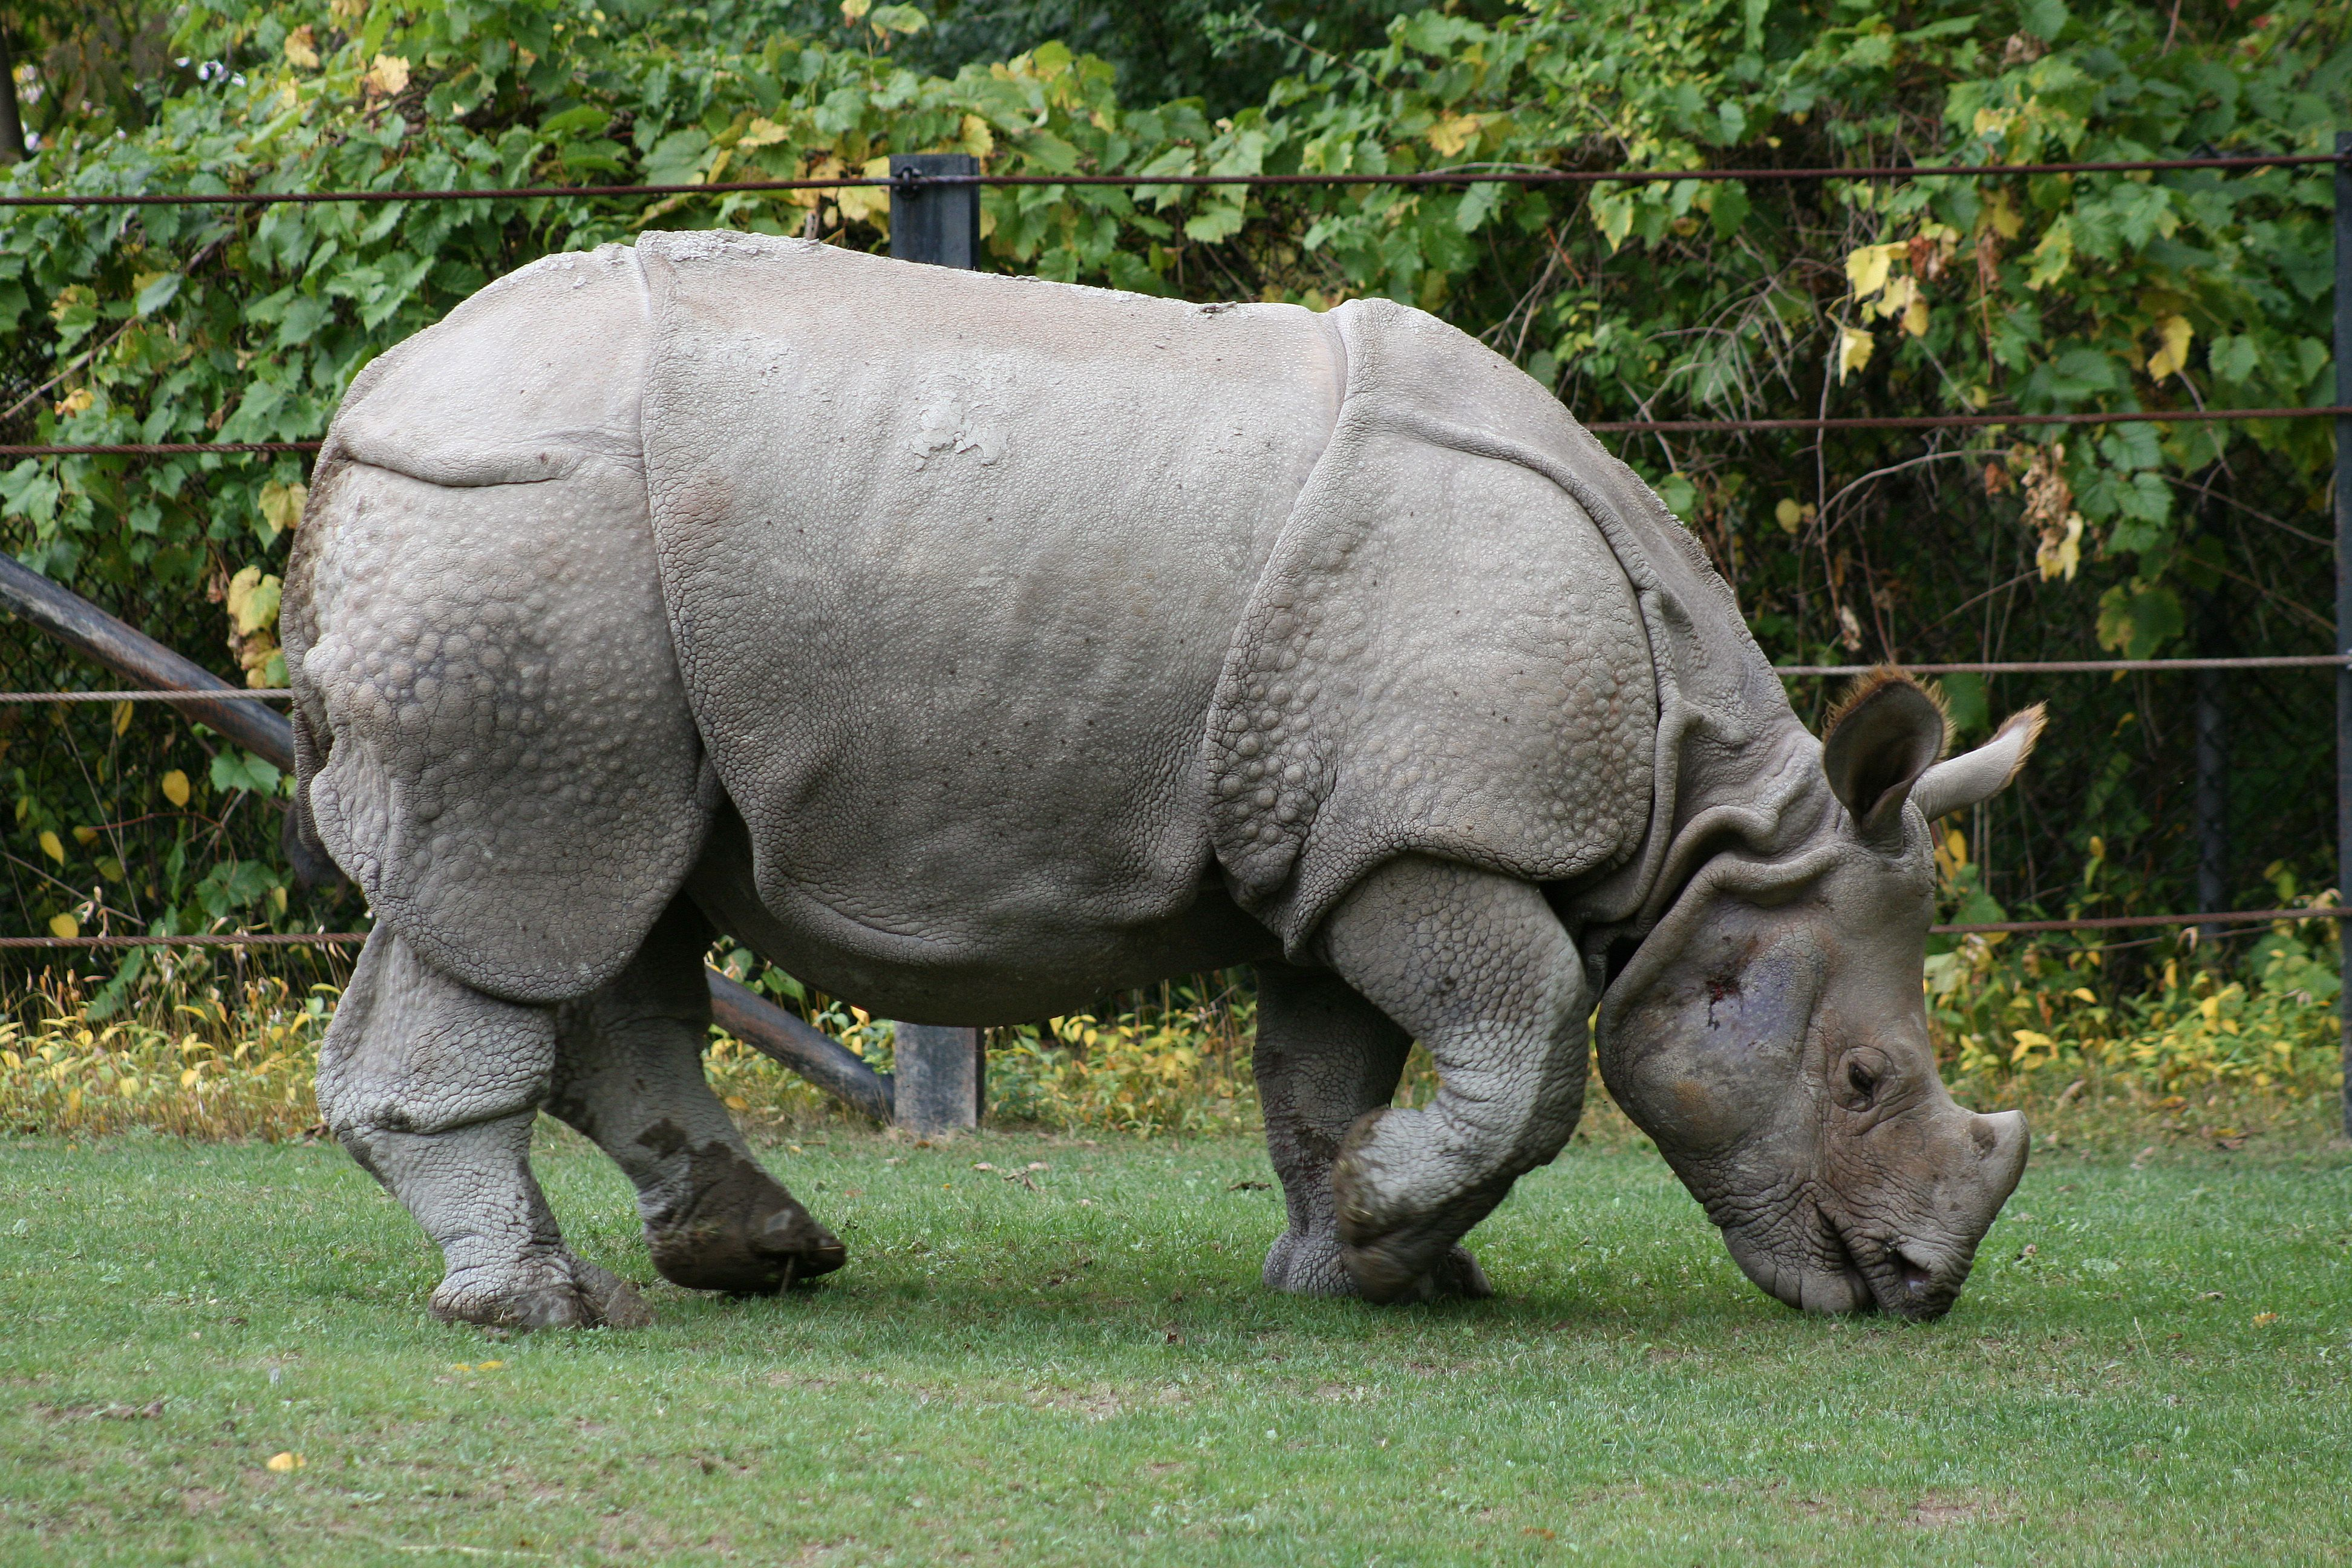 10 Most Endangered Animals in the World Most endangered